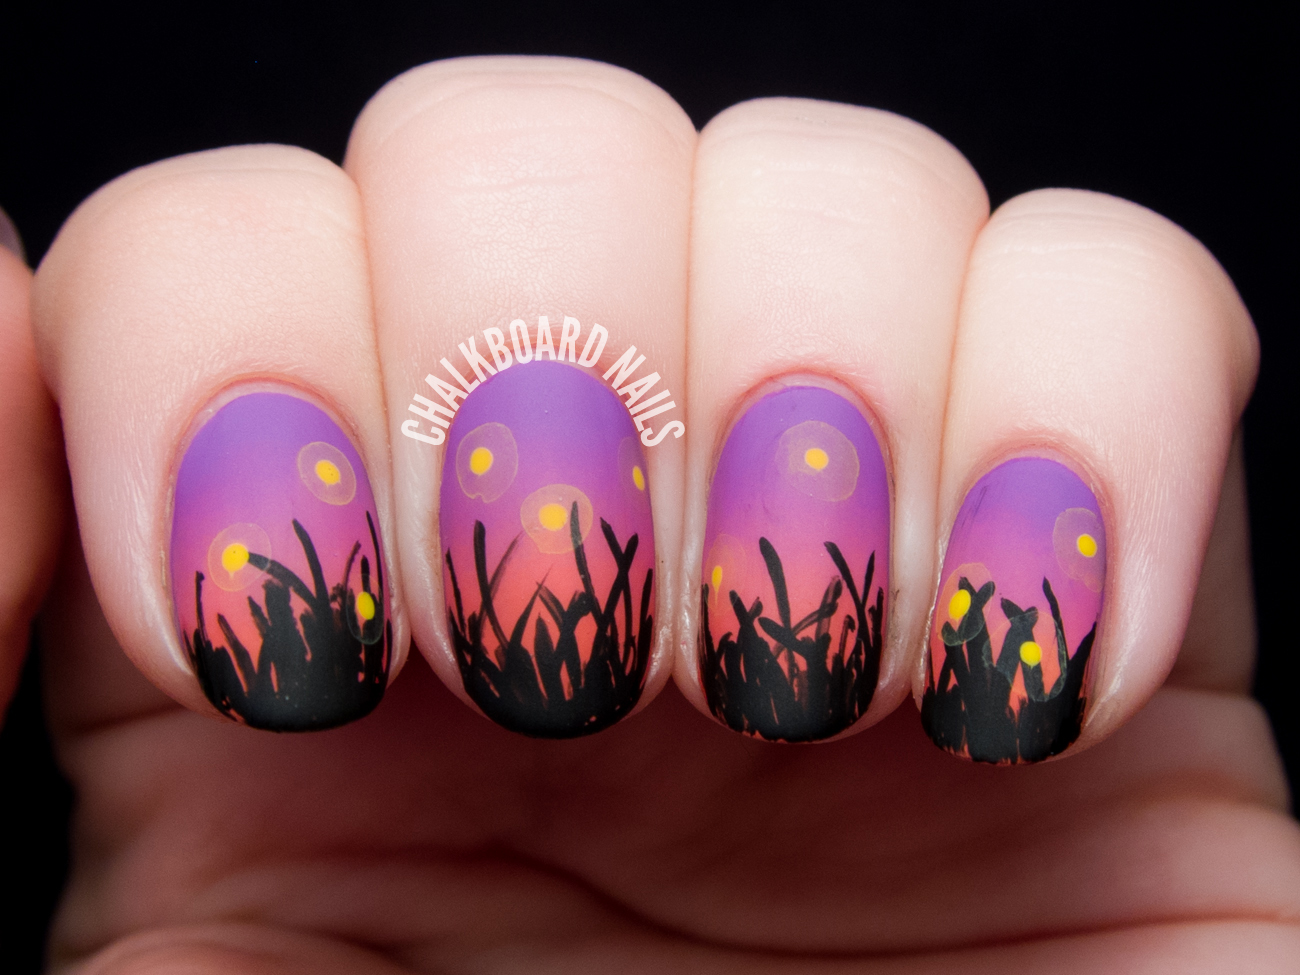 Fireflies at sunset nail art by @chalkboardnails